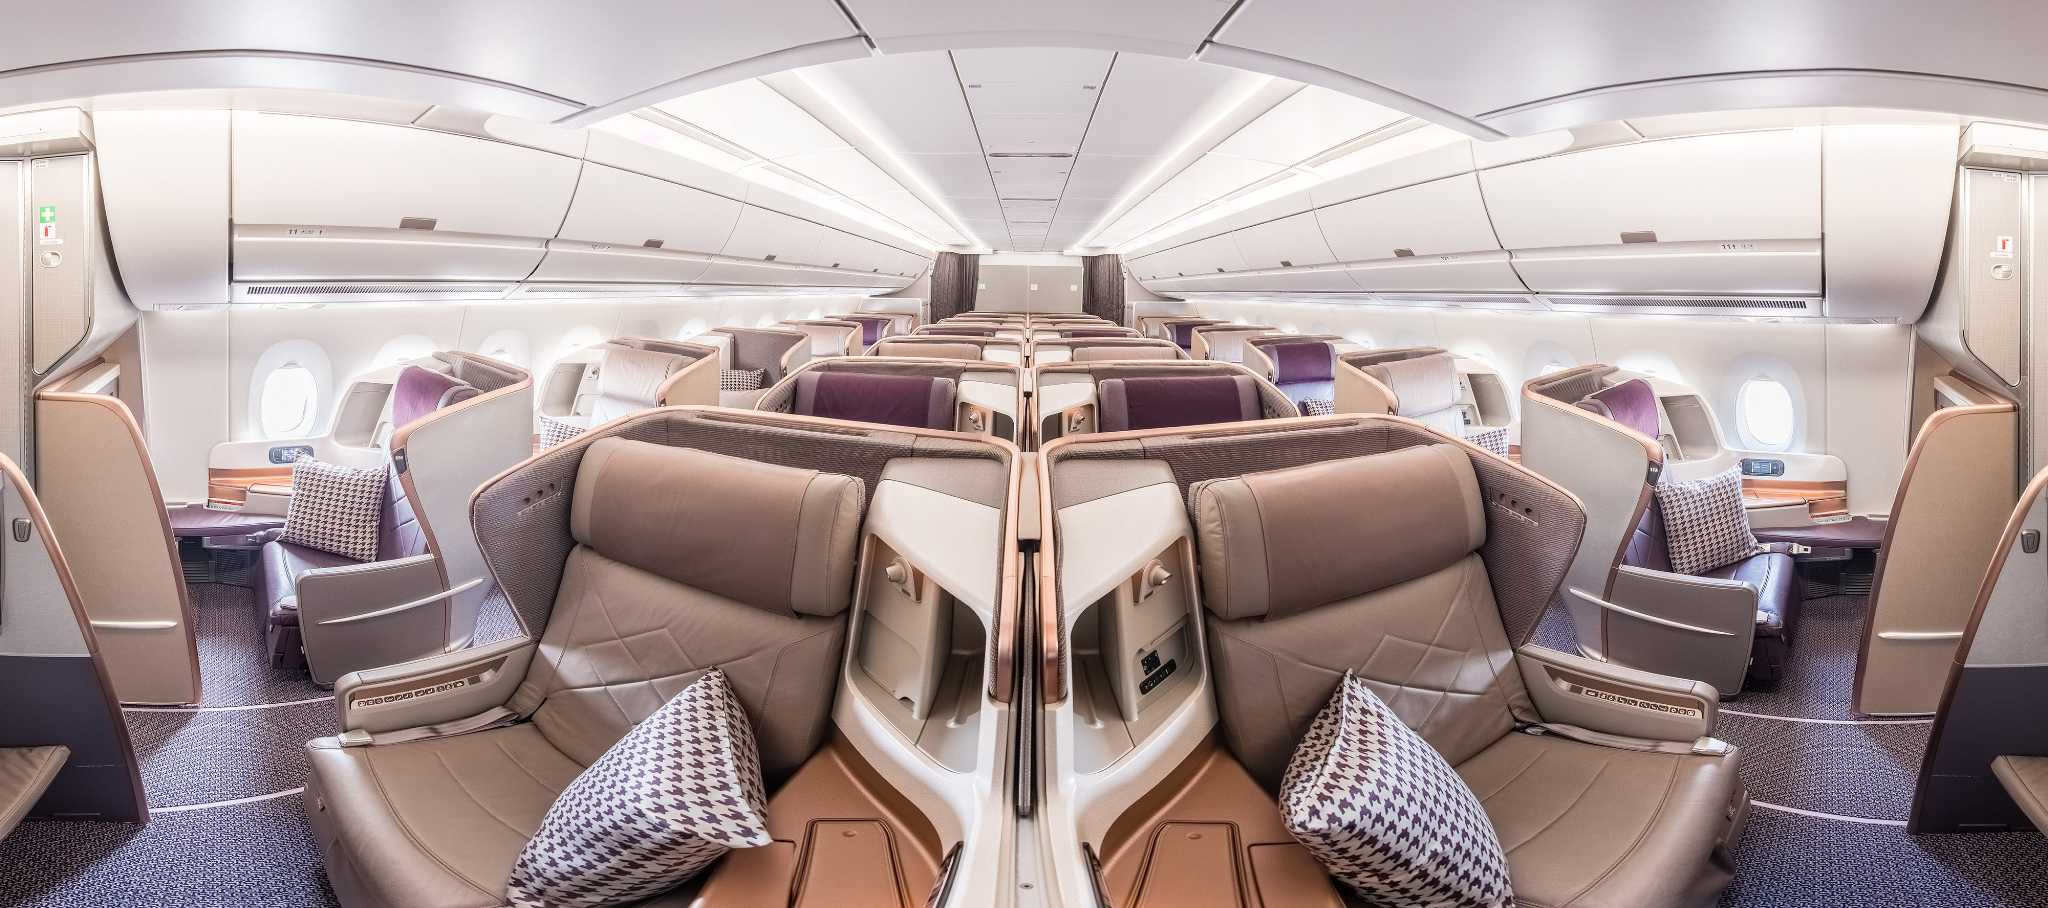 Singapore Airlines A350 Business Class Cabin Delivers